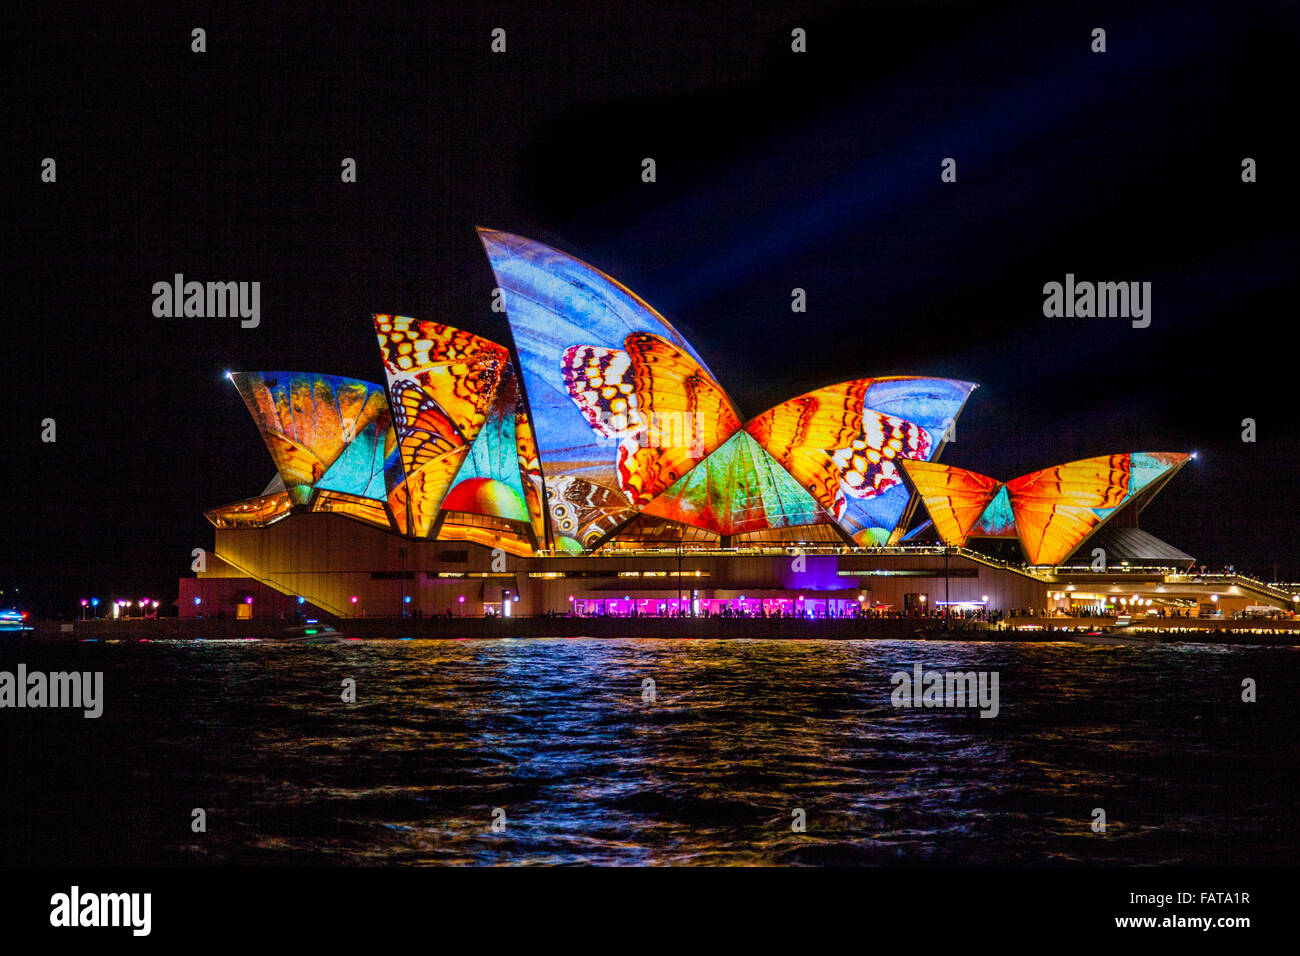 Lighting of the sails of the Sydney Opera House during Vivid 2014 by the projection art team 59 Productions - Stock Image